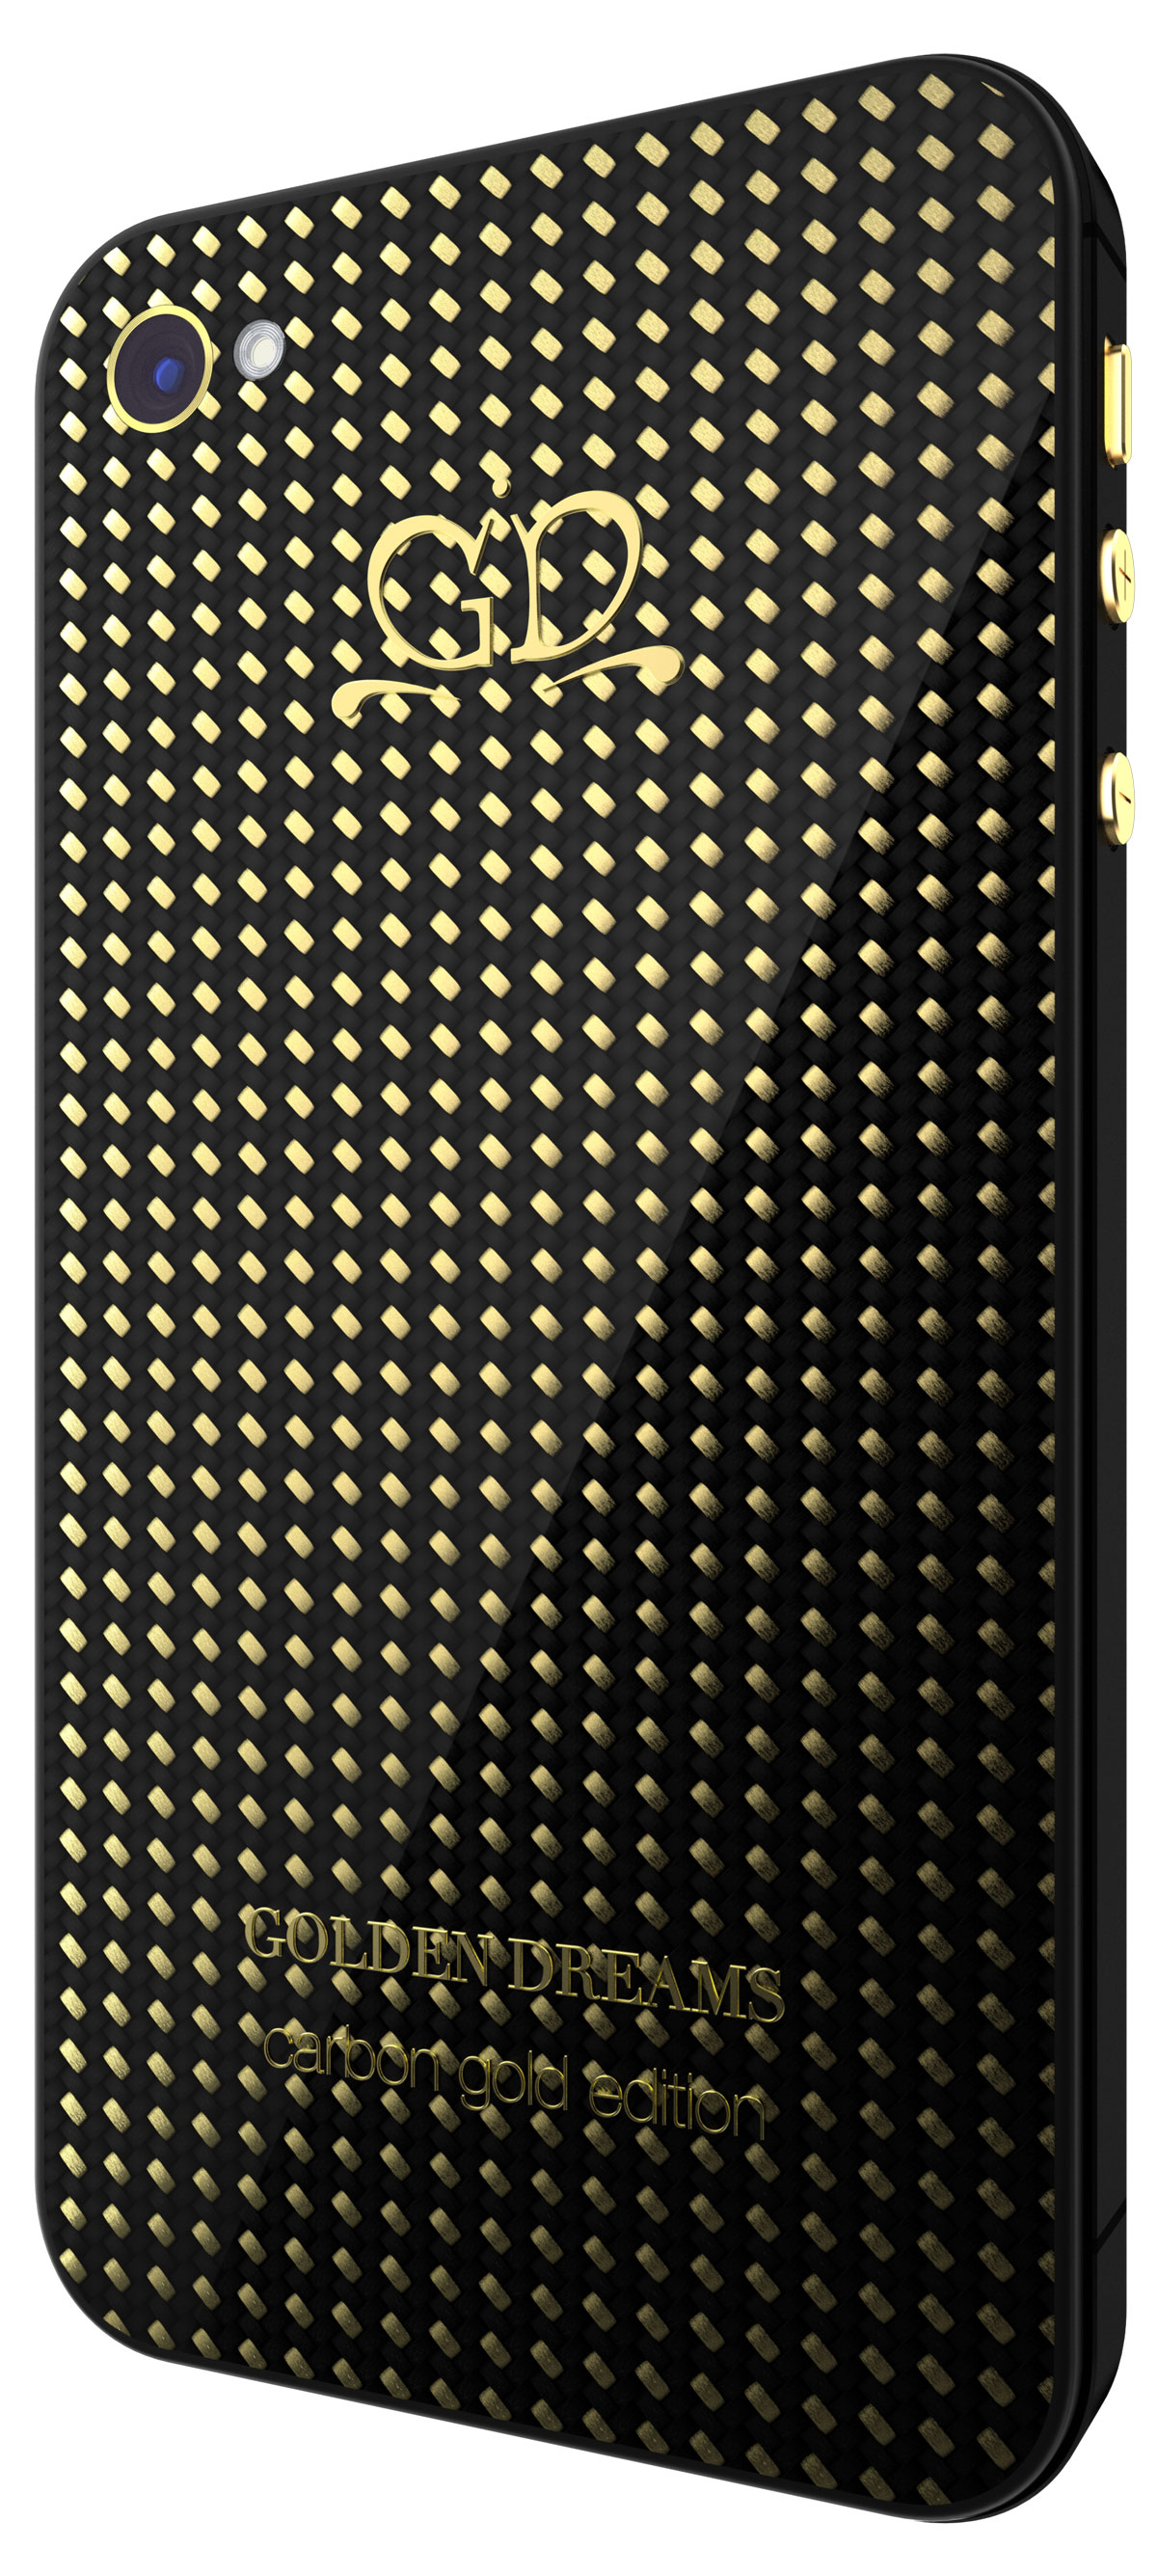 Golden Dreams Unveils a Revolutionary Carbon Gold Luxury Composite Material